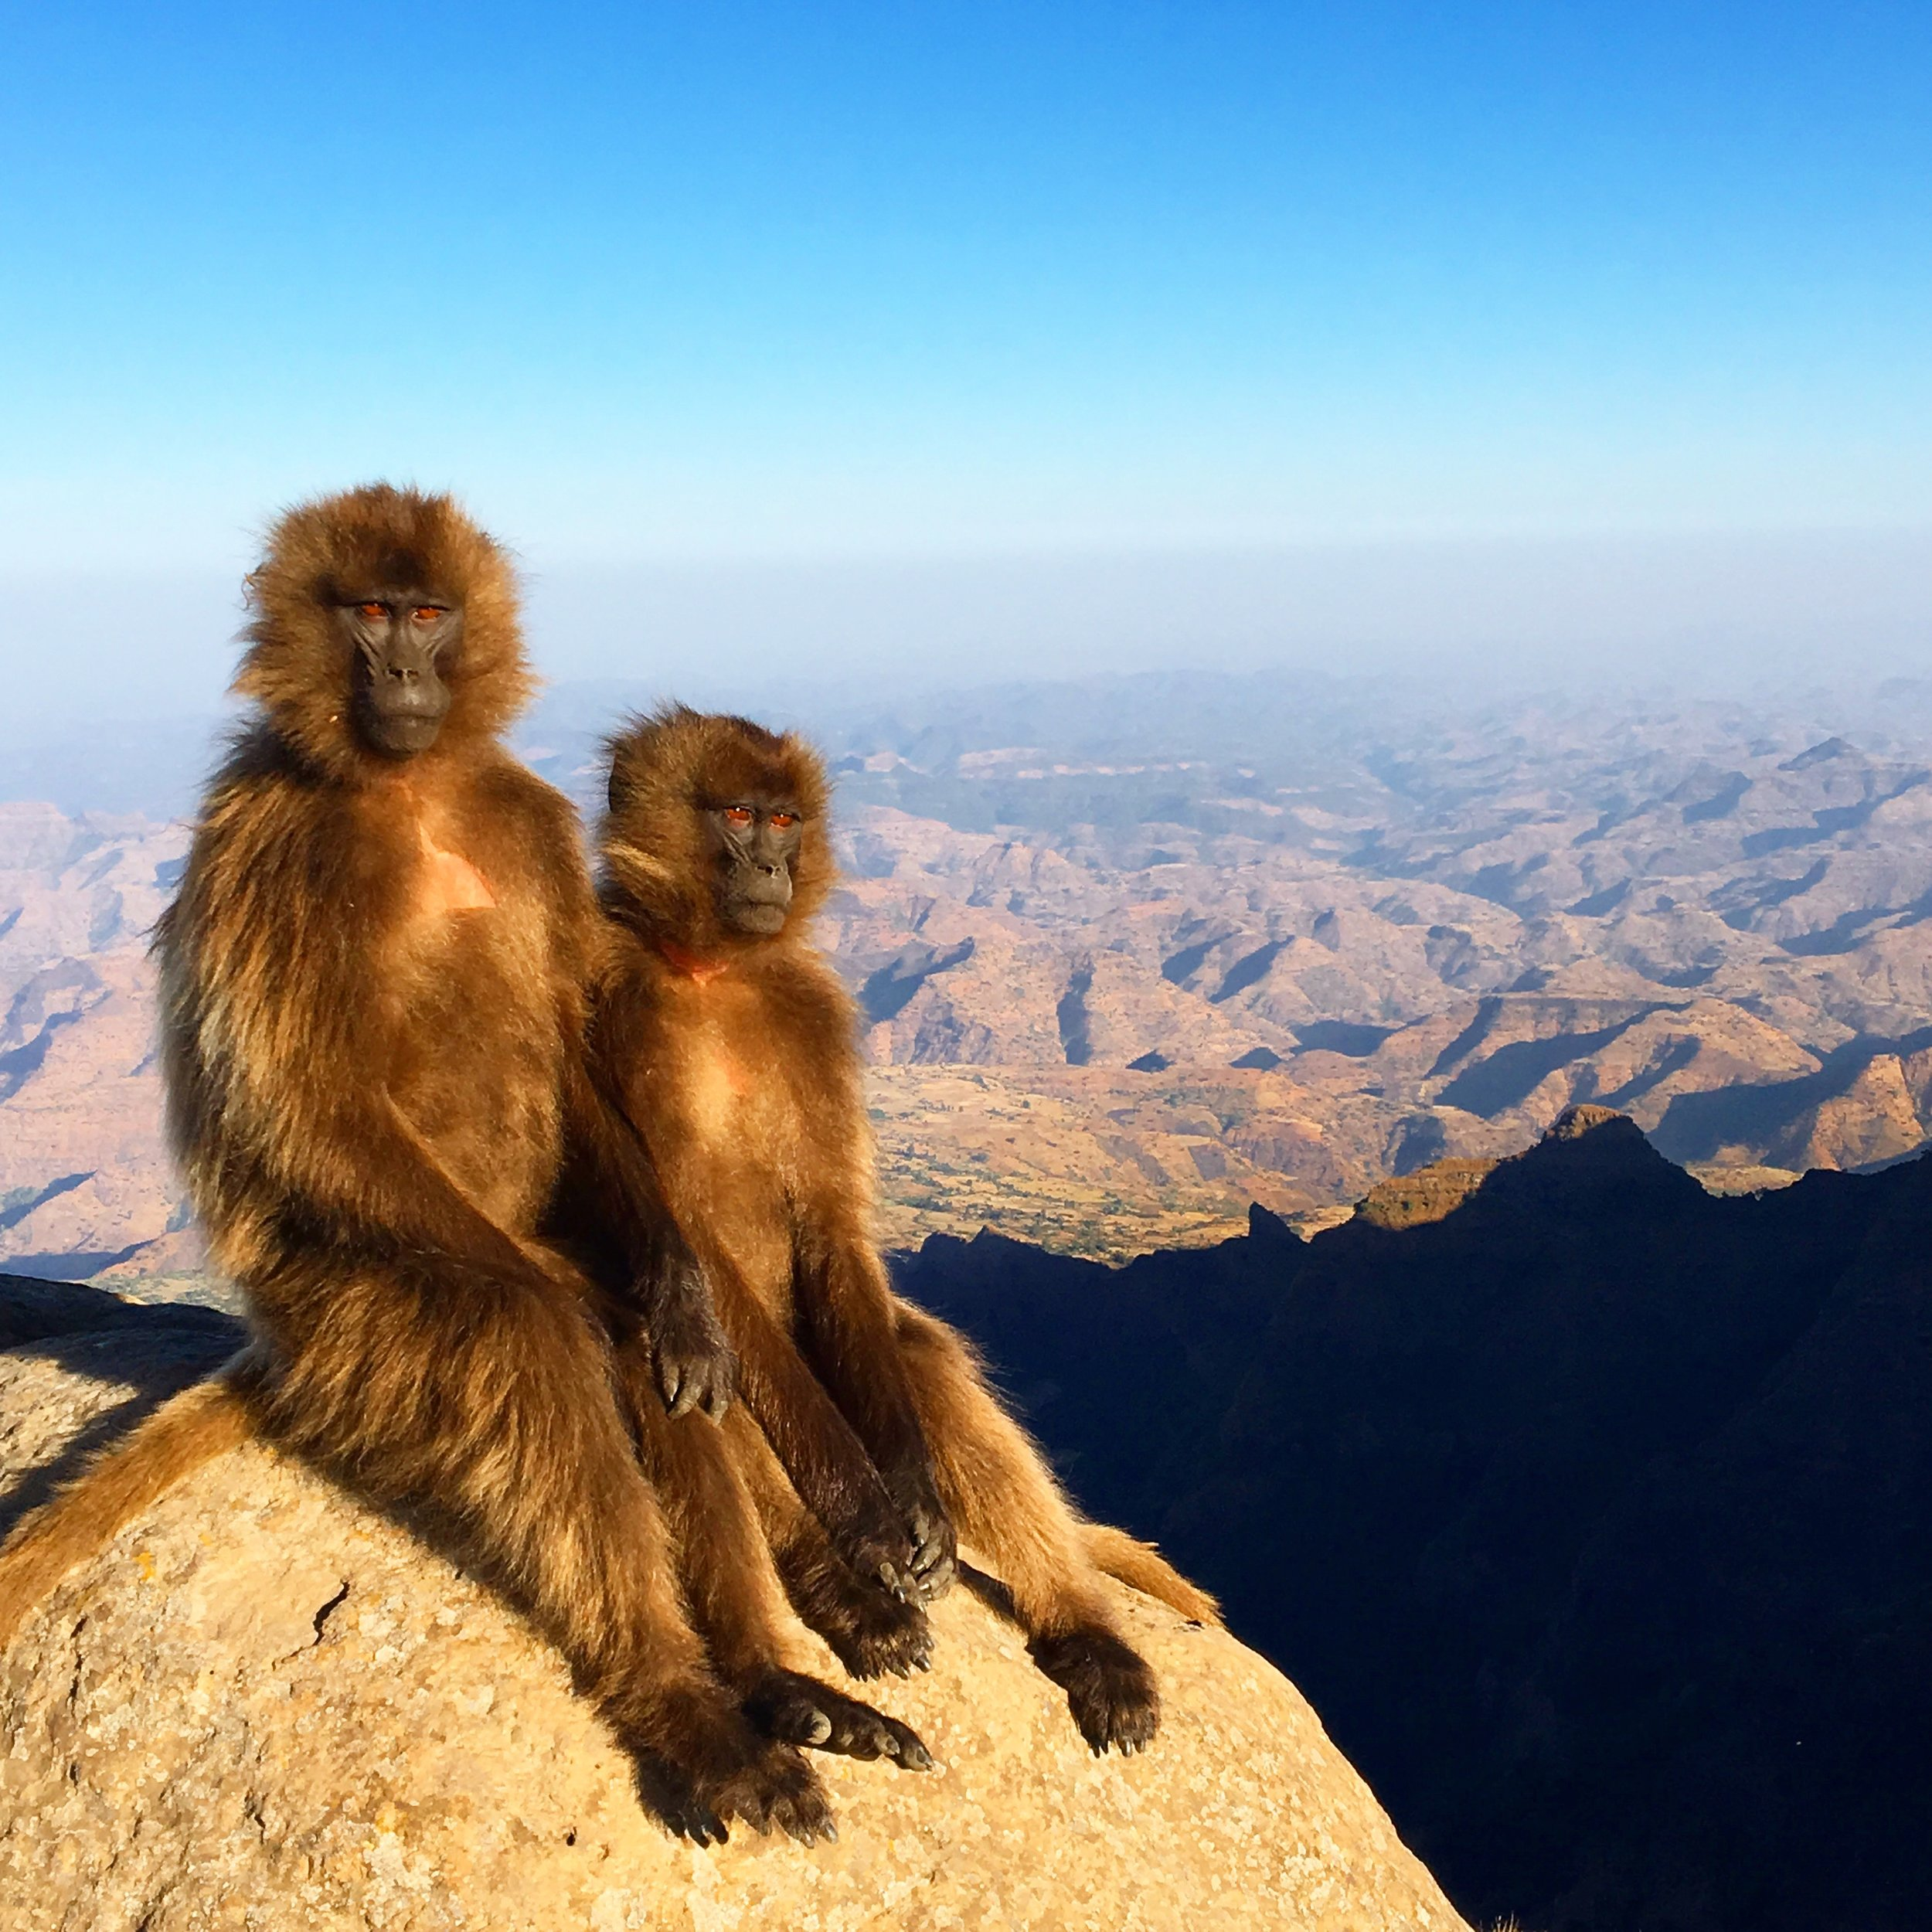 Hanging out with Gelada Baboons in Ethiopia's Simien Mountains. Photo Credit: Katie Silcox